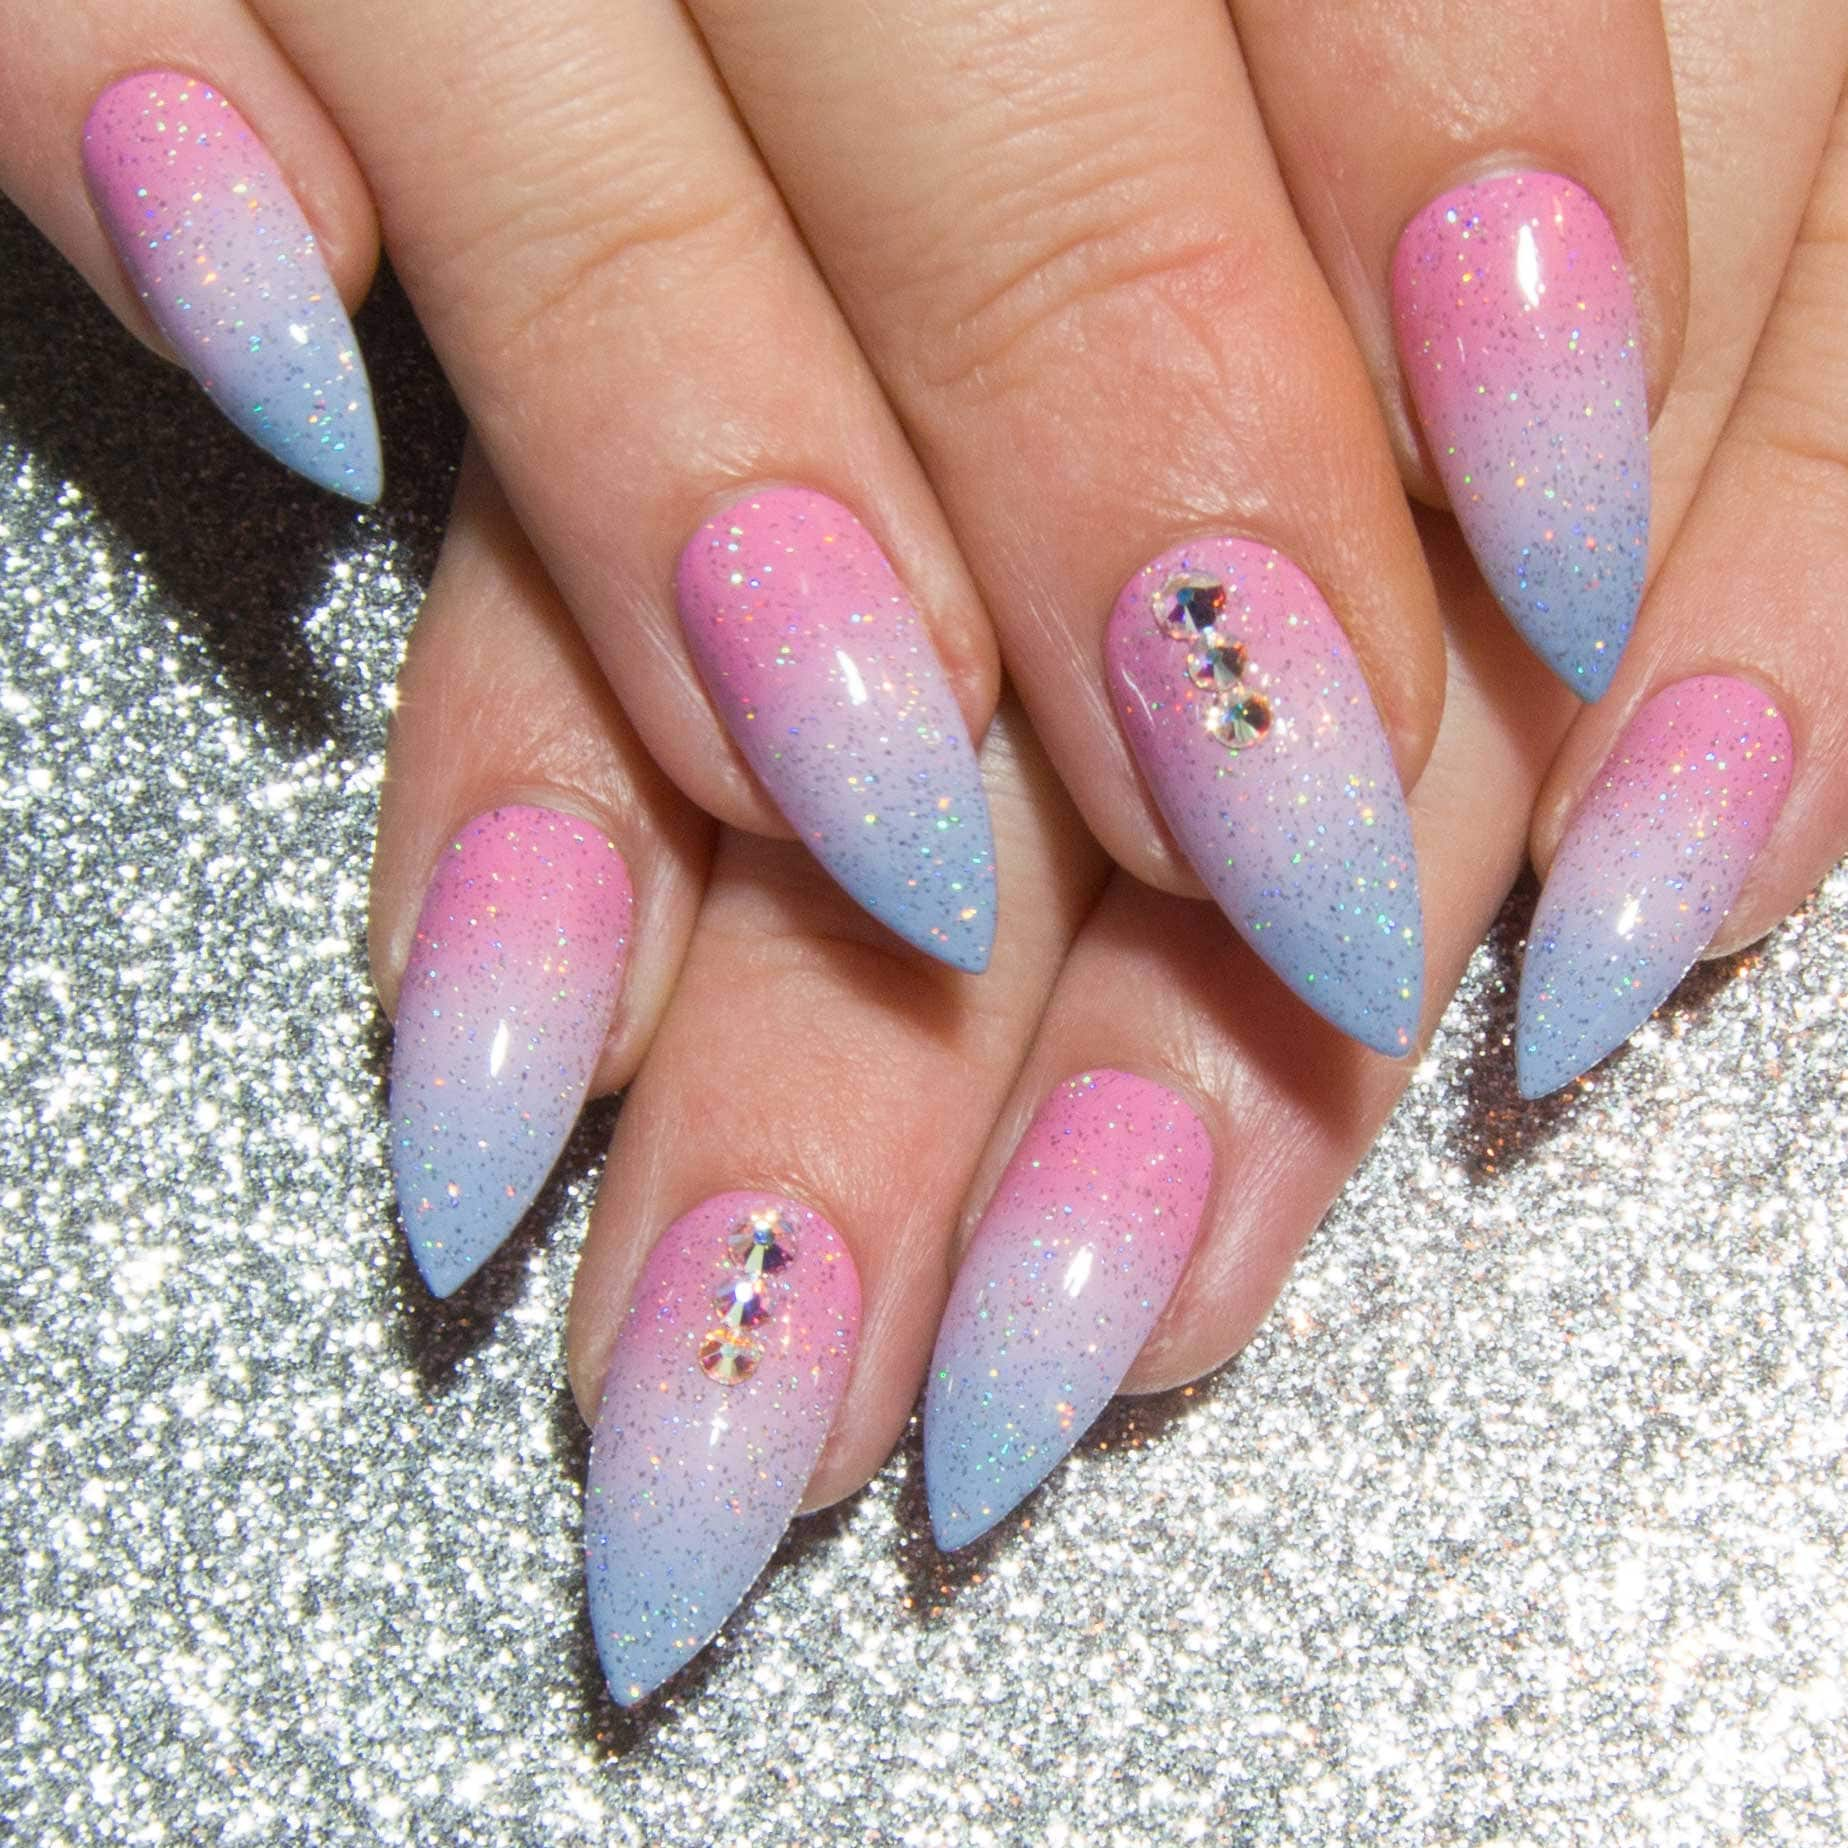 Crystal Press On Nails - Holographic Fake Nails - Pastel False Nails ...